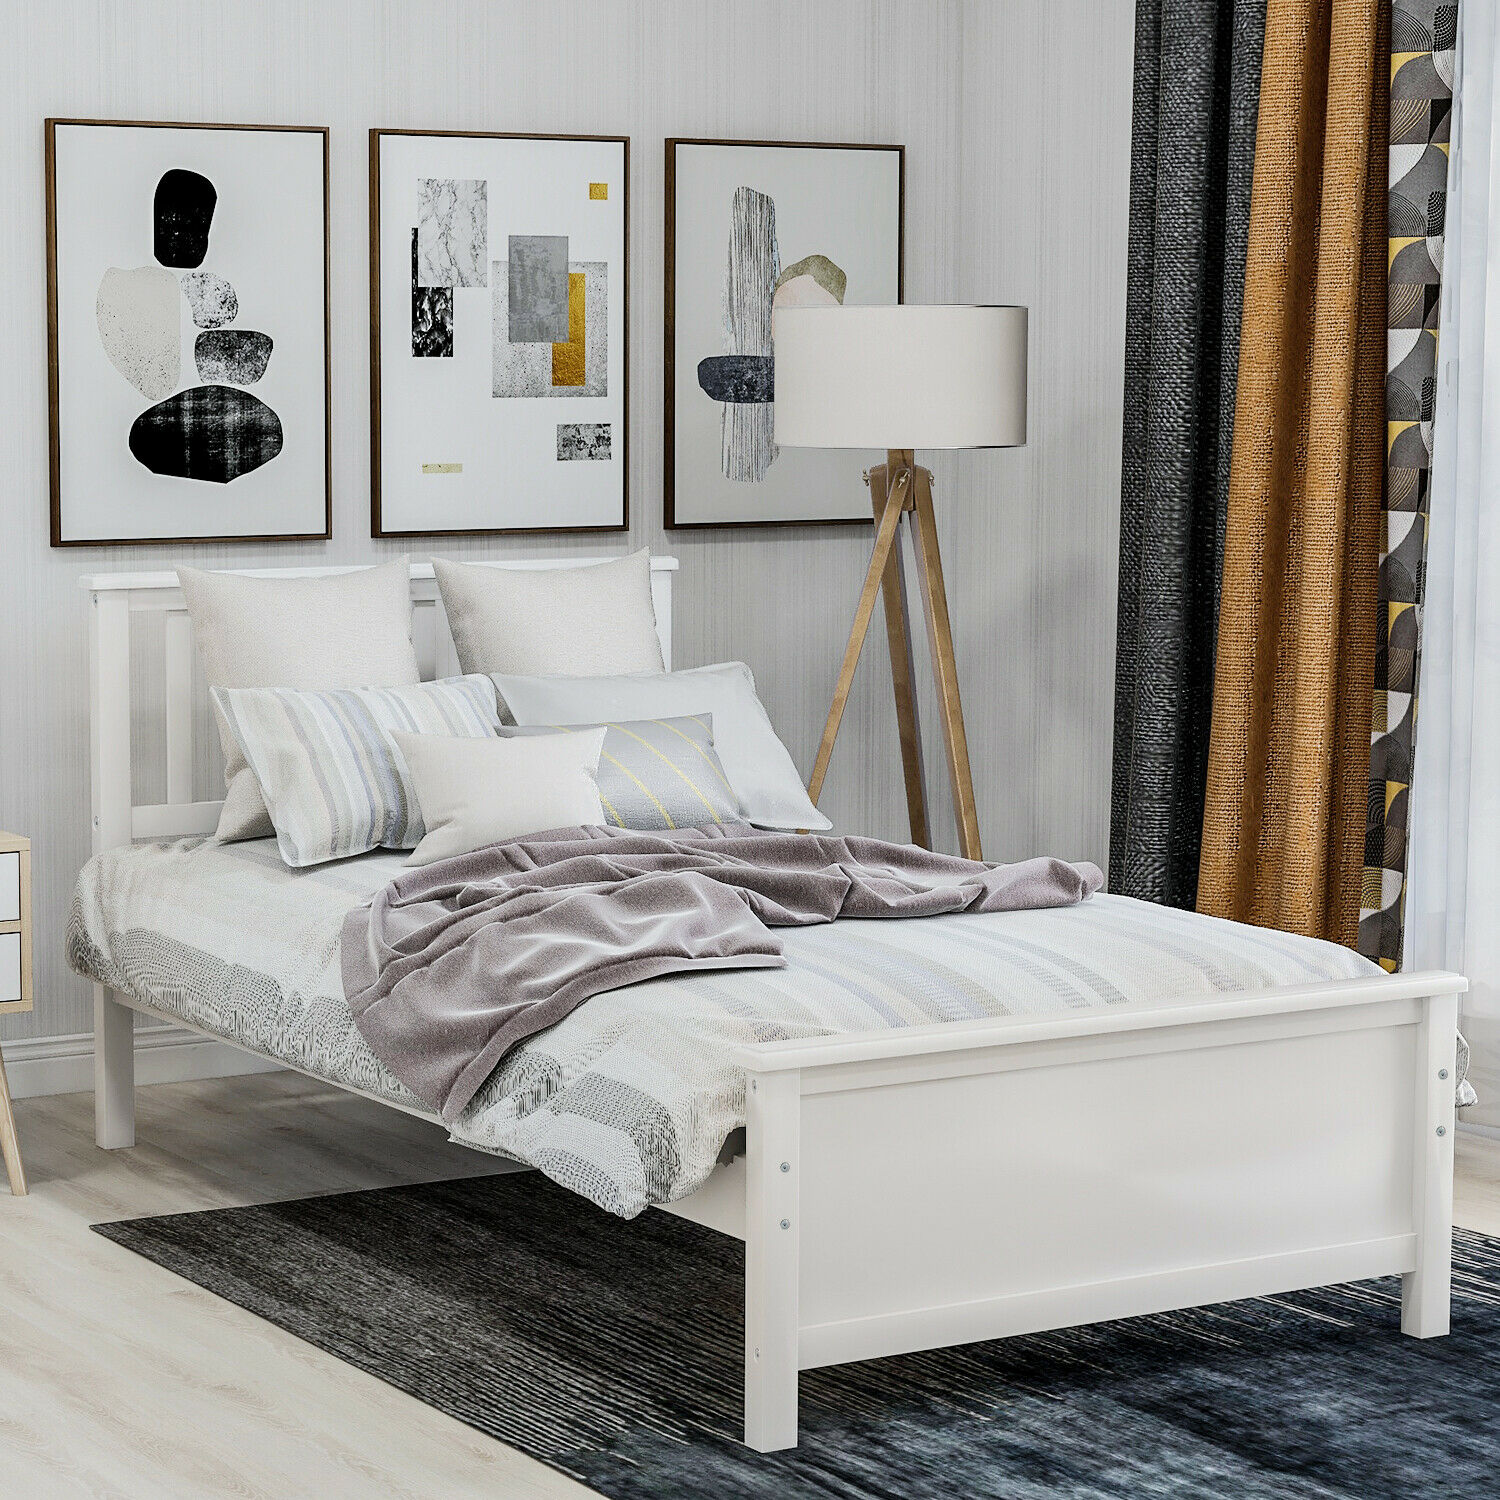 Twin Solid Wood Platform Bed Frame With Headboard Footboard Wood Slat Support For Sale Online